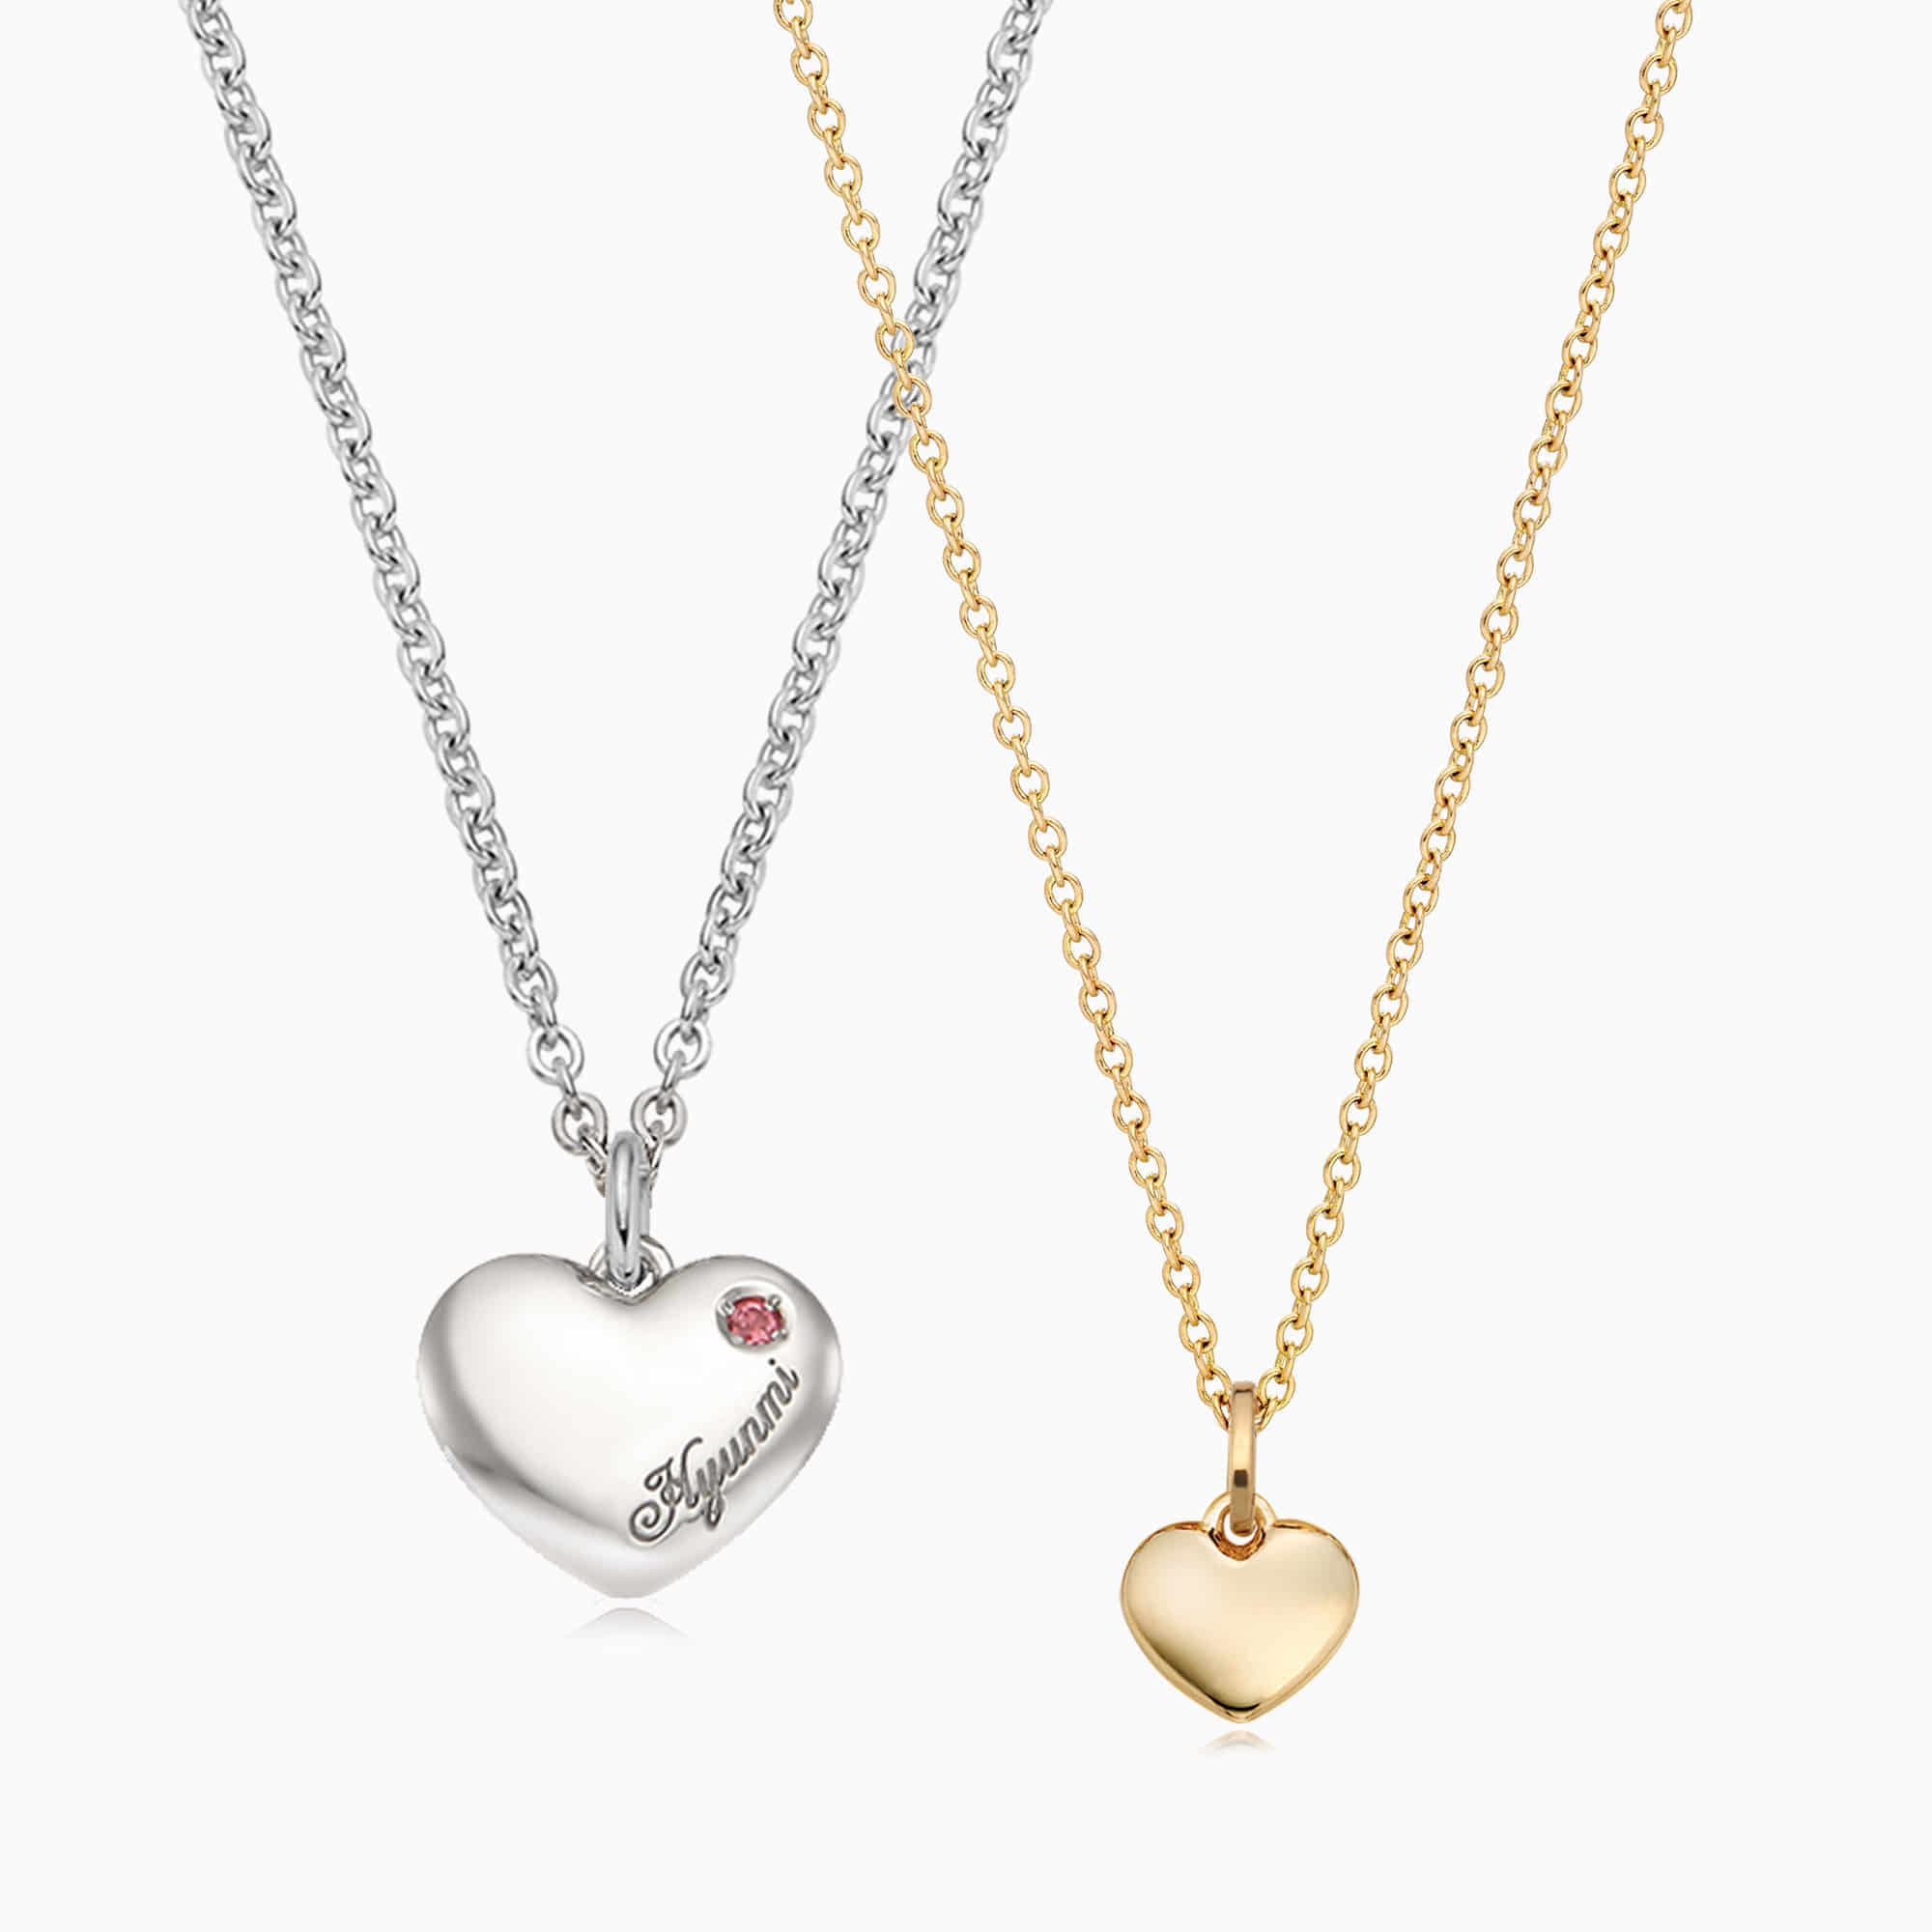 [With My Child] Silver/ 14K/18K Simple Heart Necklace